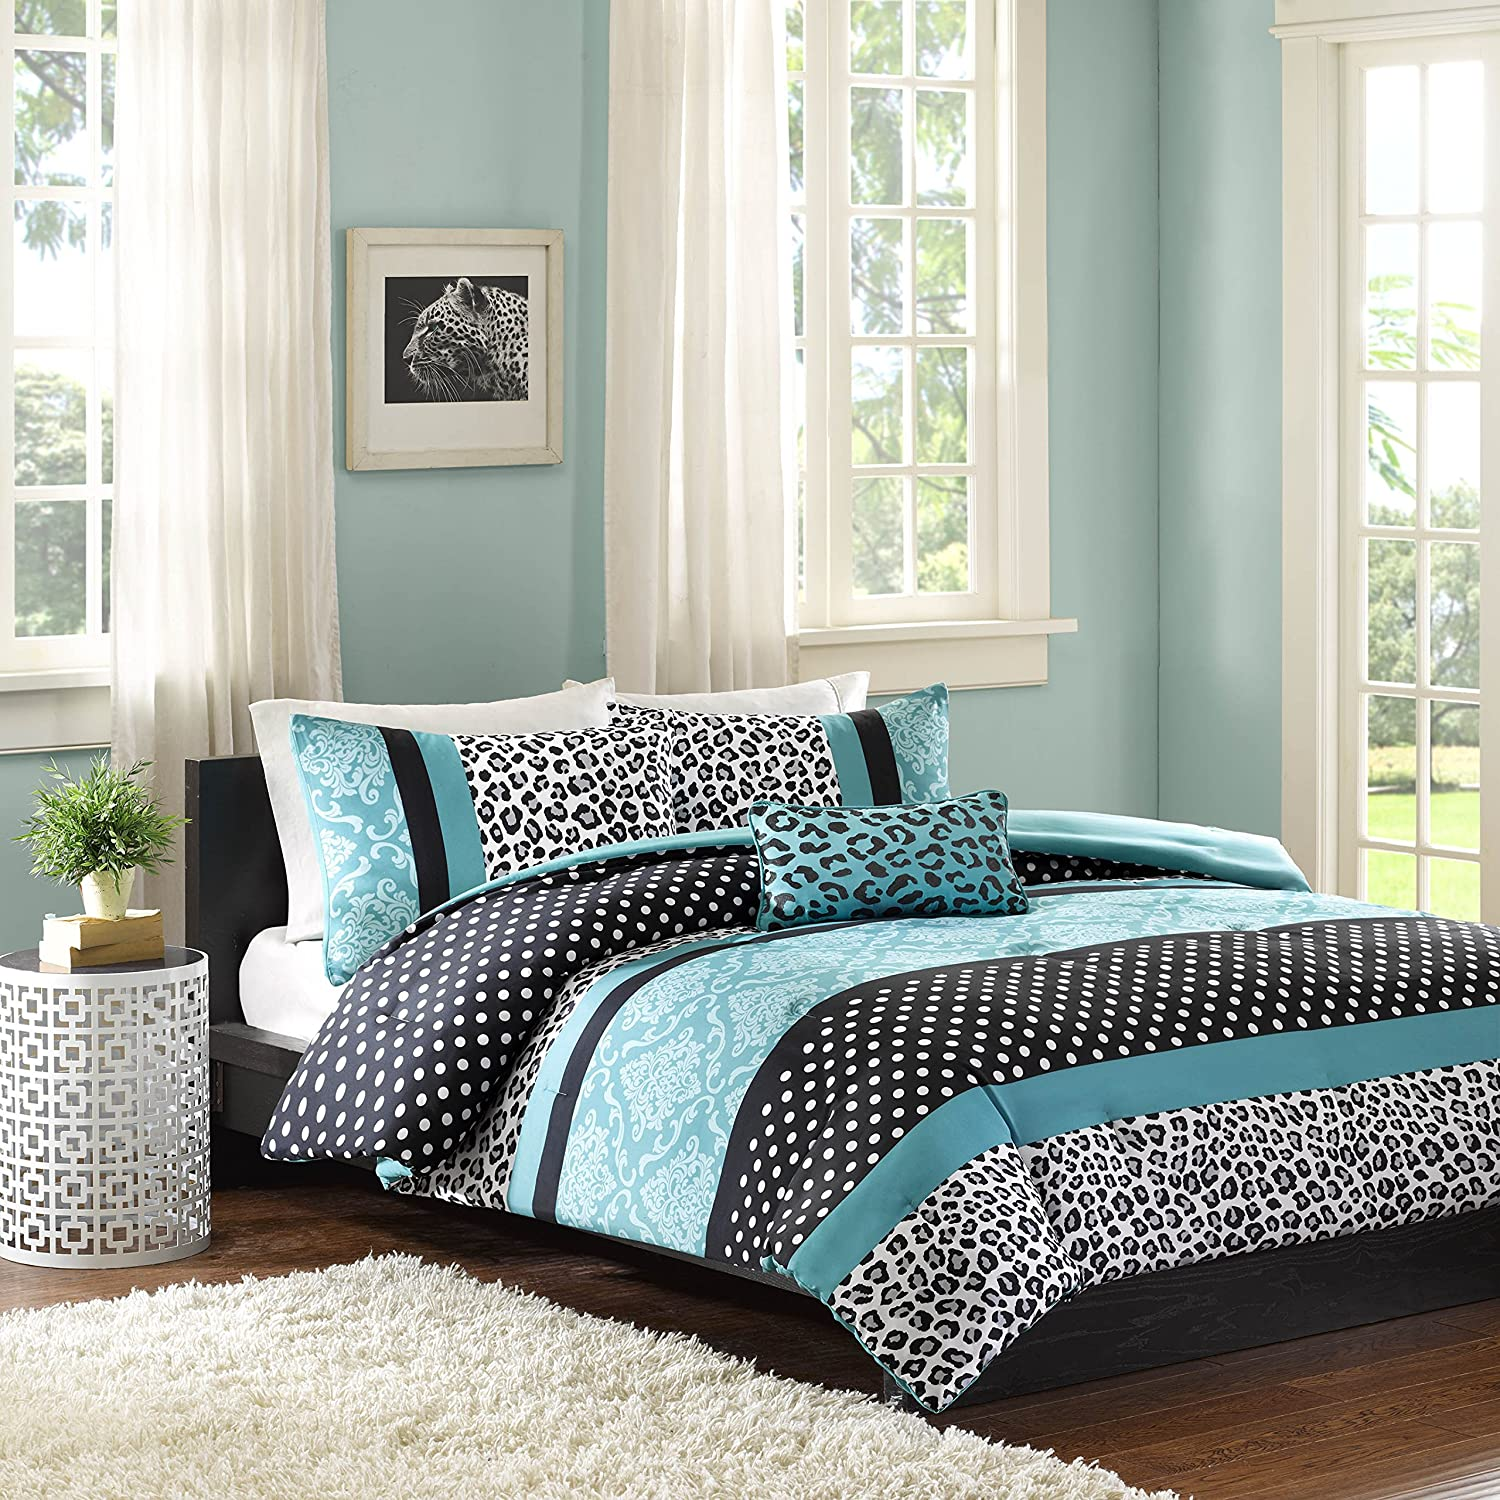 Mizone Chloe 4 Piece Comforter Set, Full/Queen, Tea